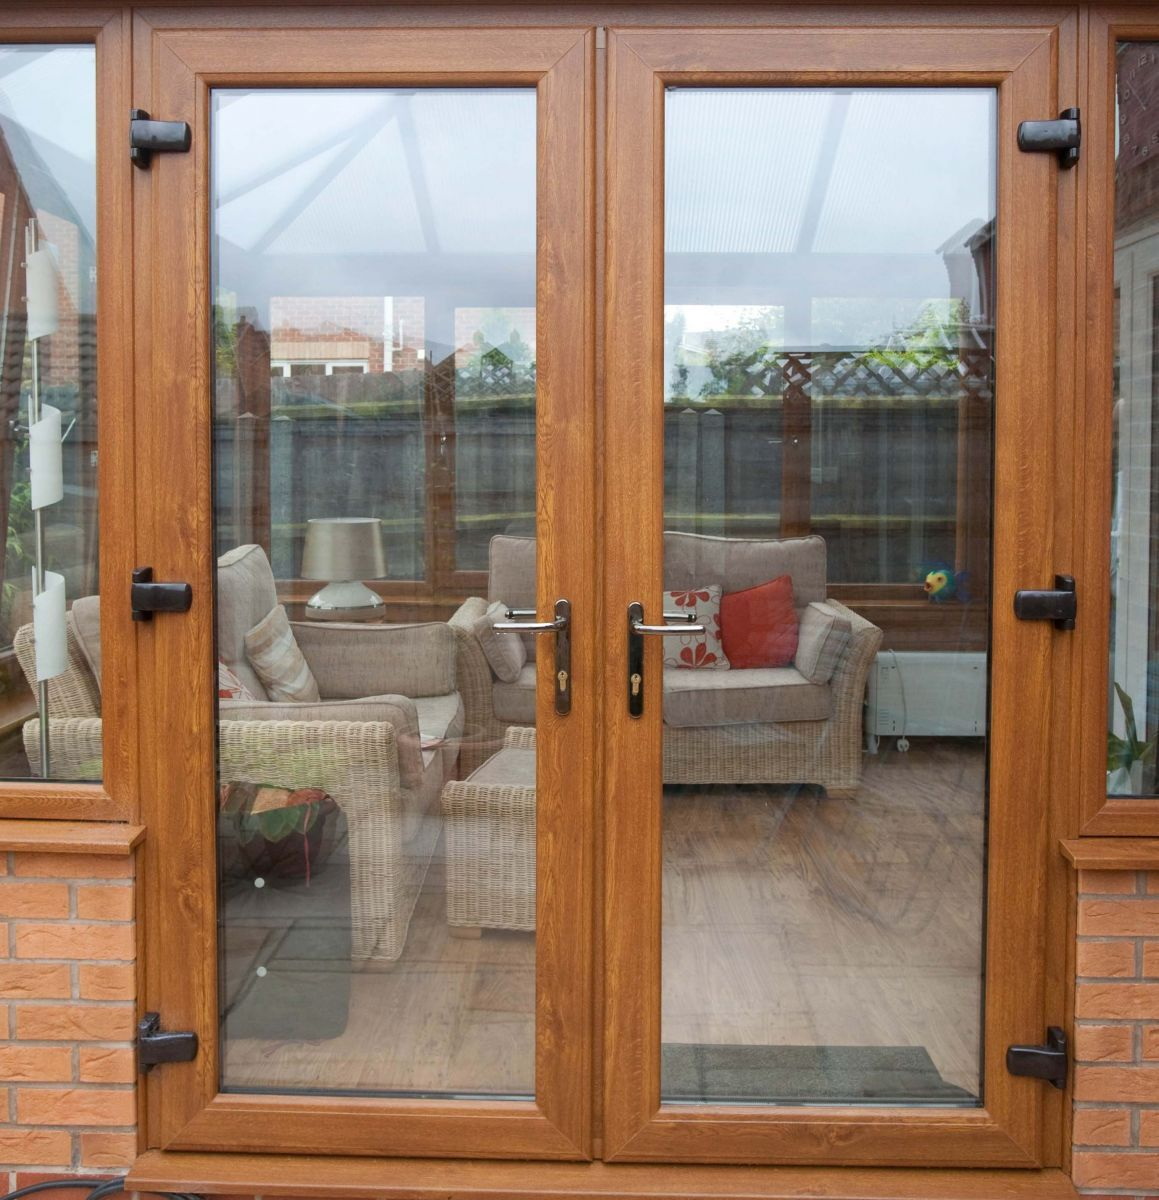 Upvc Oak French Doors Doncaster Jpg 1159 1200 French Doors Exterior Contemporary Patio Doors Upvc French Doors